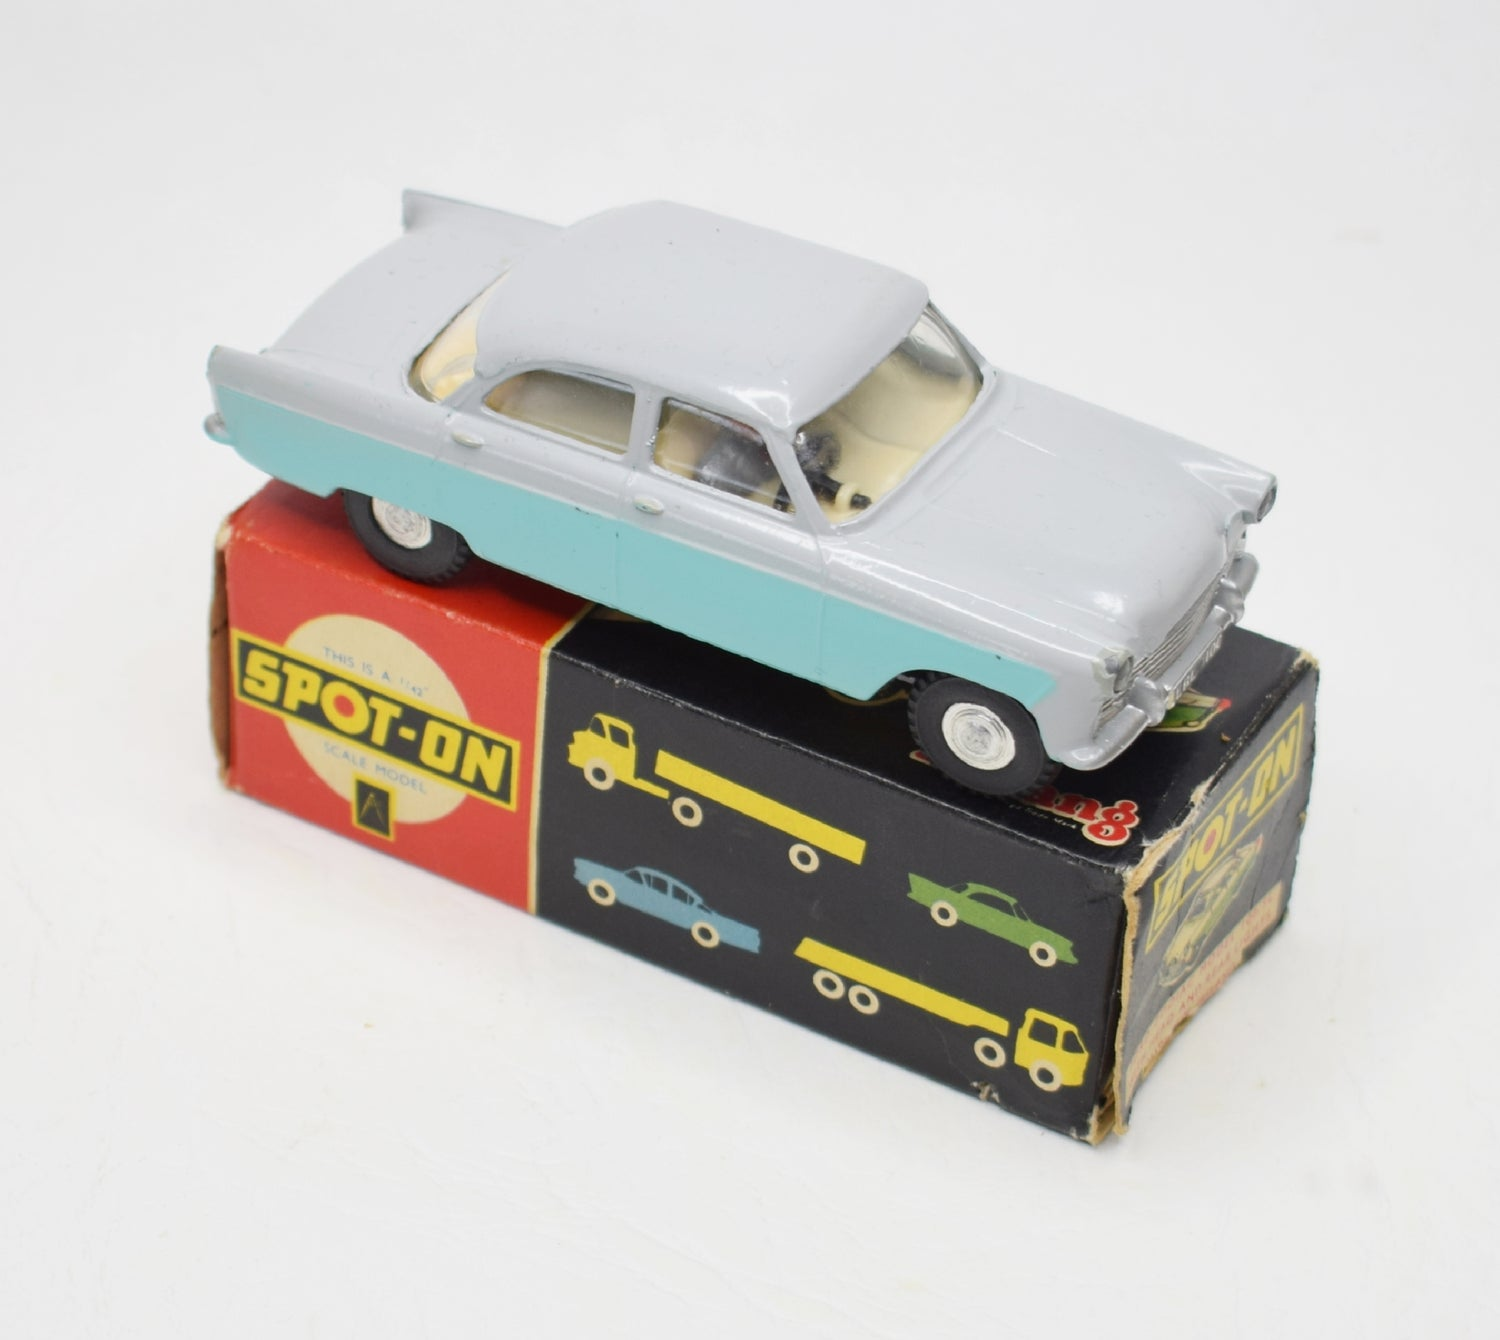 Spot-on 100sl Ford Zodiac Very Near Mint/Boxed (Pale grey/Light turquoise)